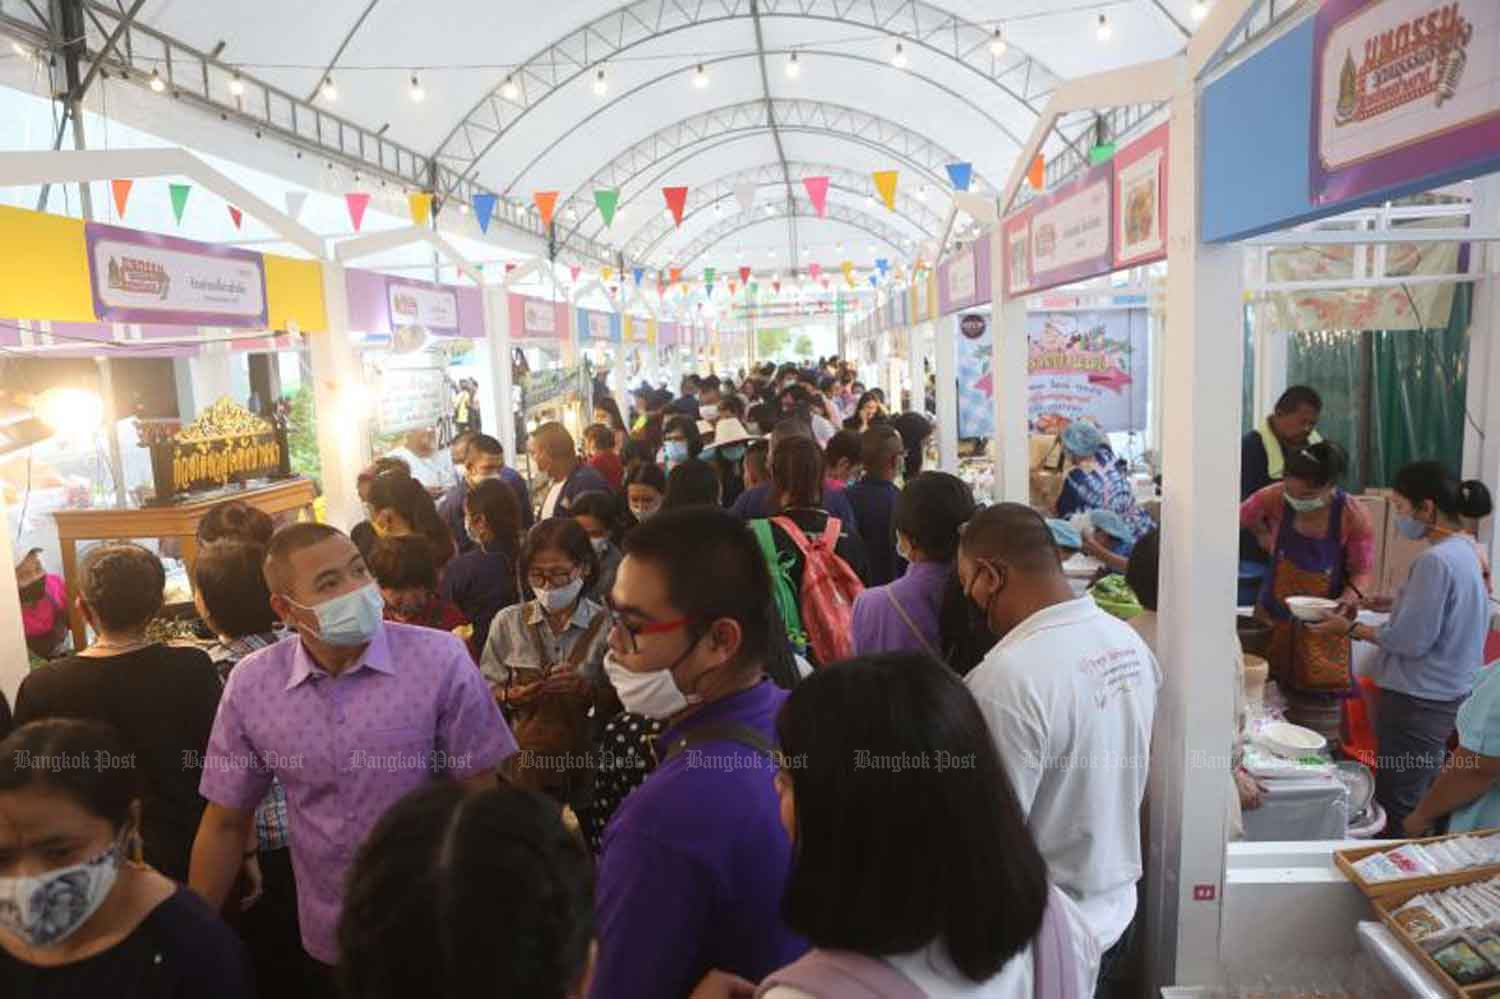 Visitors pack a trade fair at the Thailand Cultural Centre in Bangkok on Tuesday,  when the country logged 10 new Covid-19 cases. (Photo: Pattarapong Chatpattarasill)